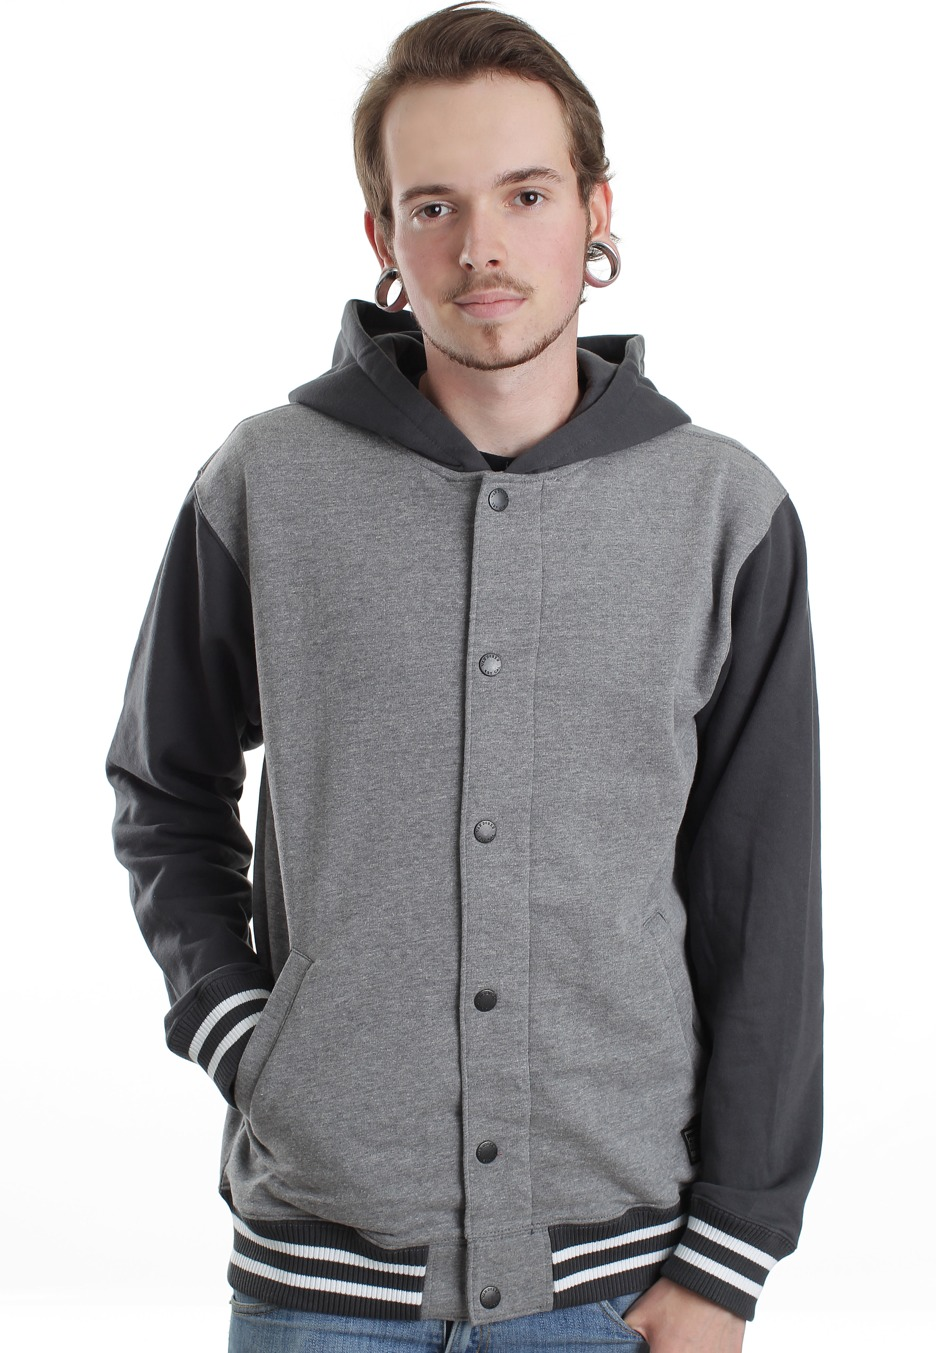 a5de1a2c3a Vans - University Gravel Heather New Charcoal Heather - Hooded College  Jacket - Impericon.com UK